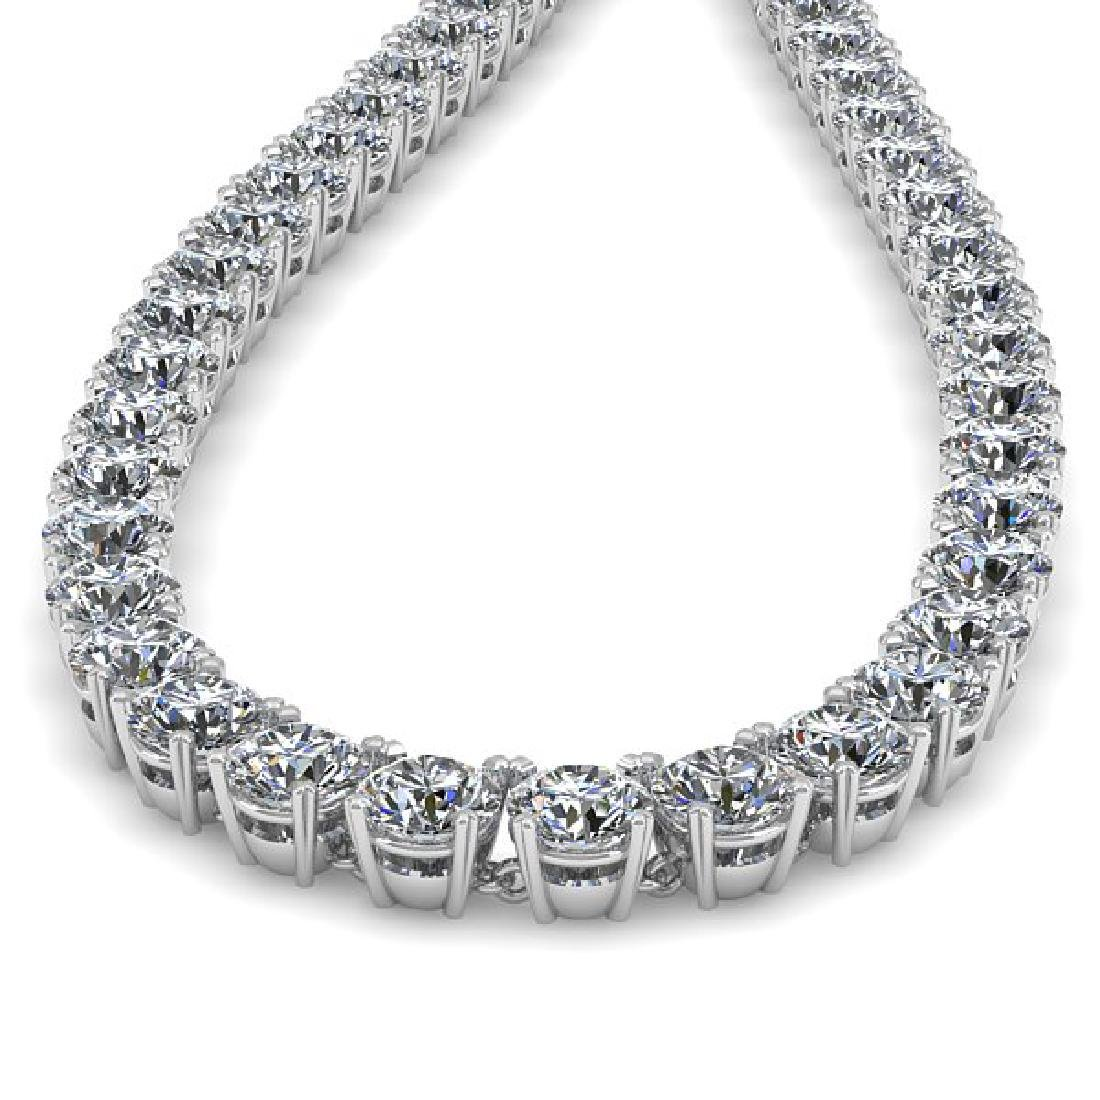 30 CTW Certified SI Diamond Necklace 18K White Gold - 2